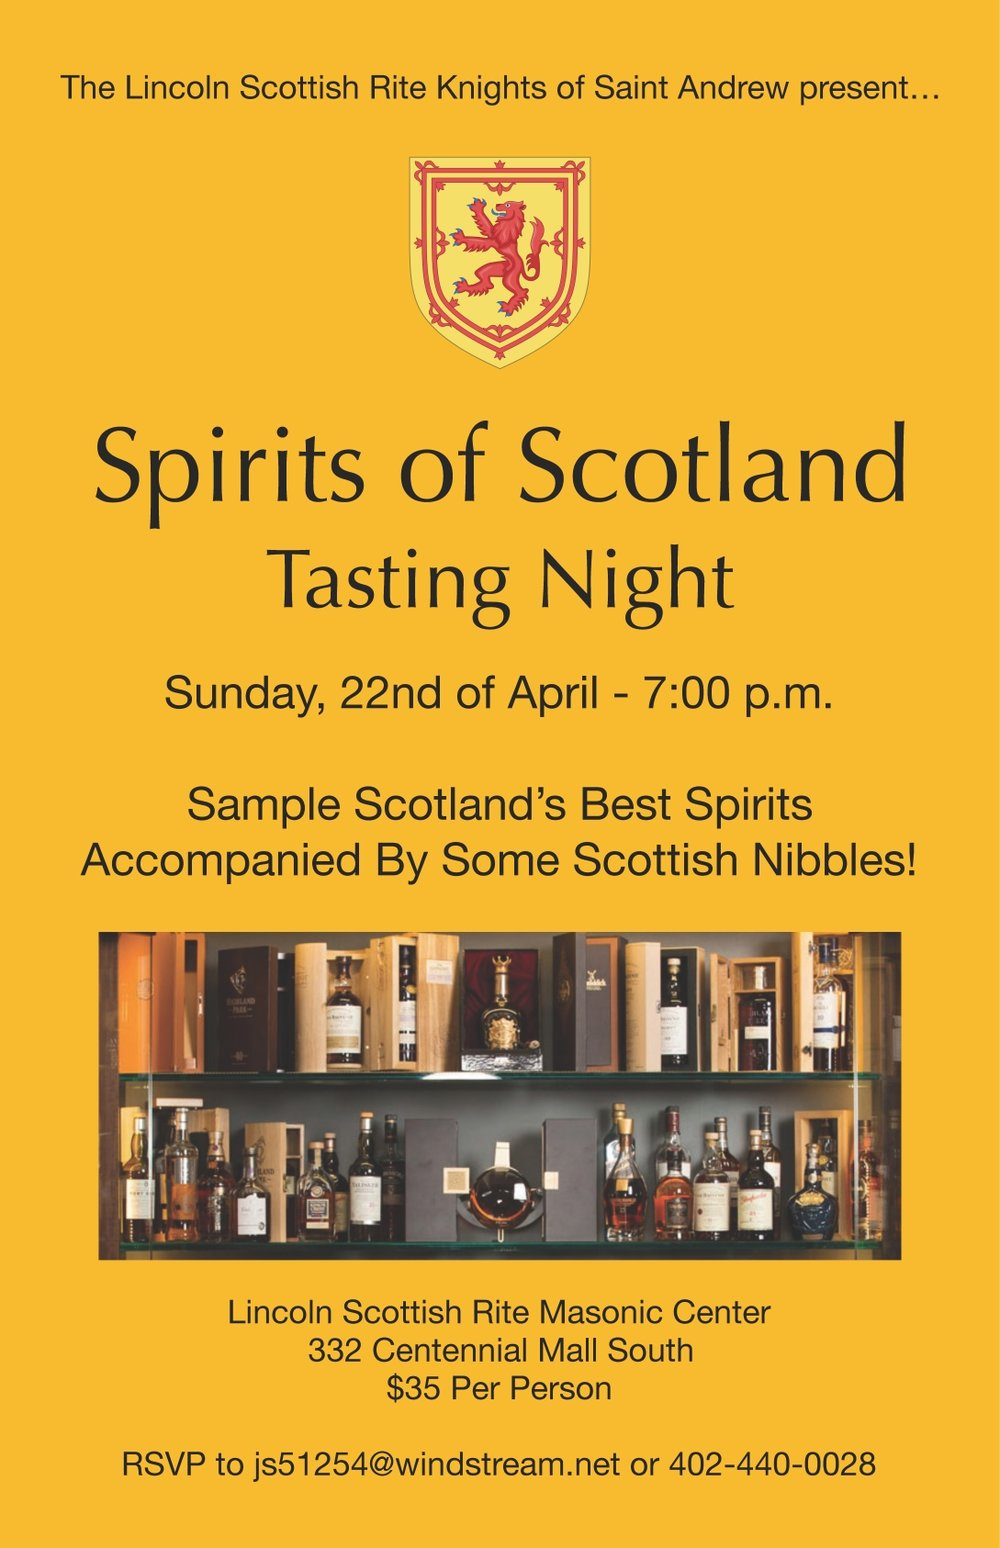 Click image above to download a PDF of the Spirits of Scotland Tasting Night flier.